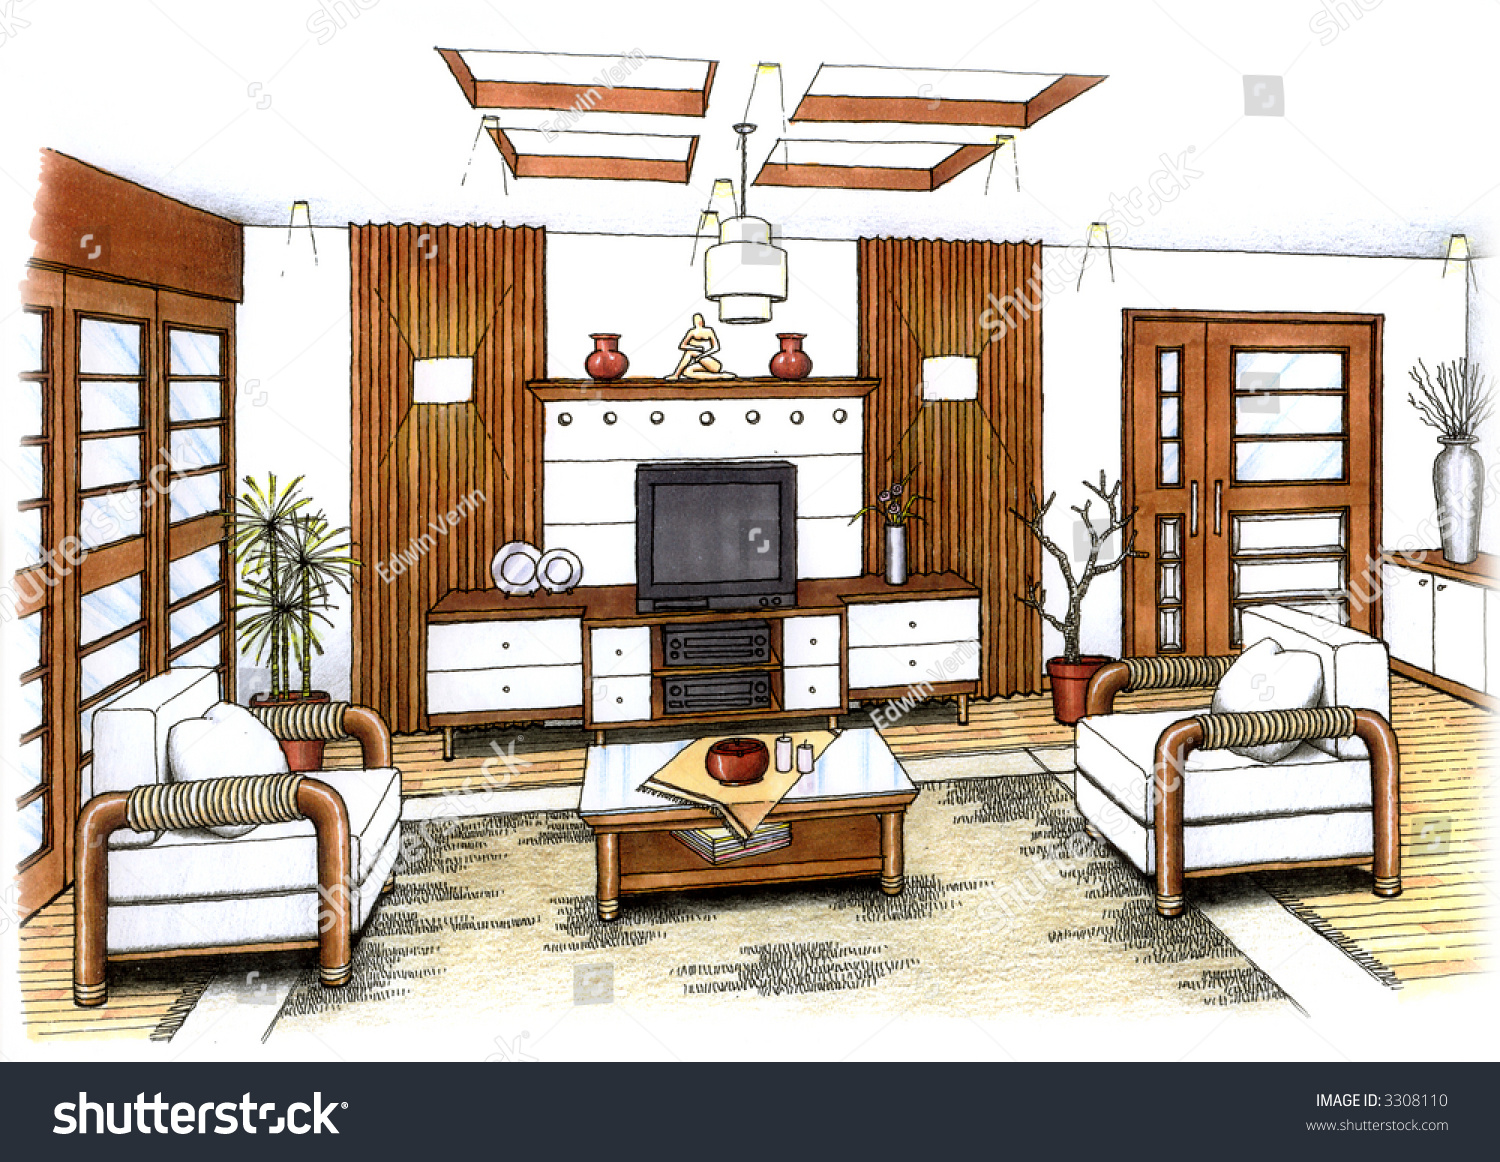 Artists simple sketch interior design living stock for Simple drawing room interior design